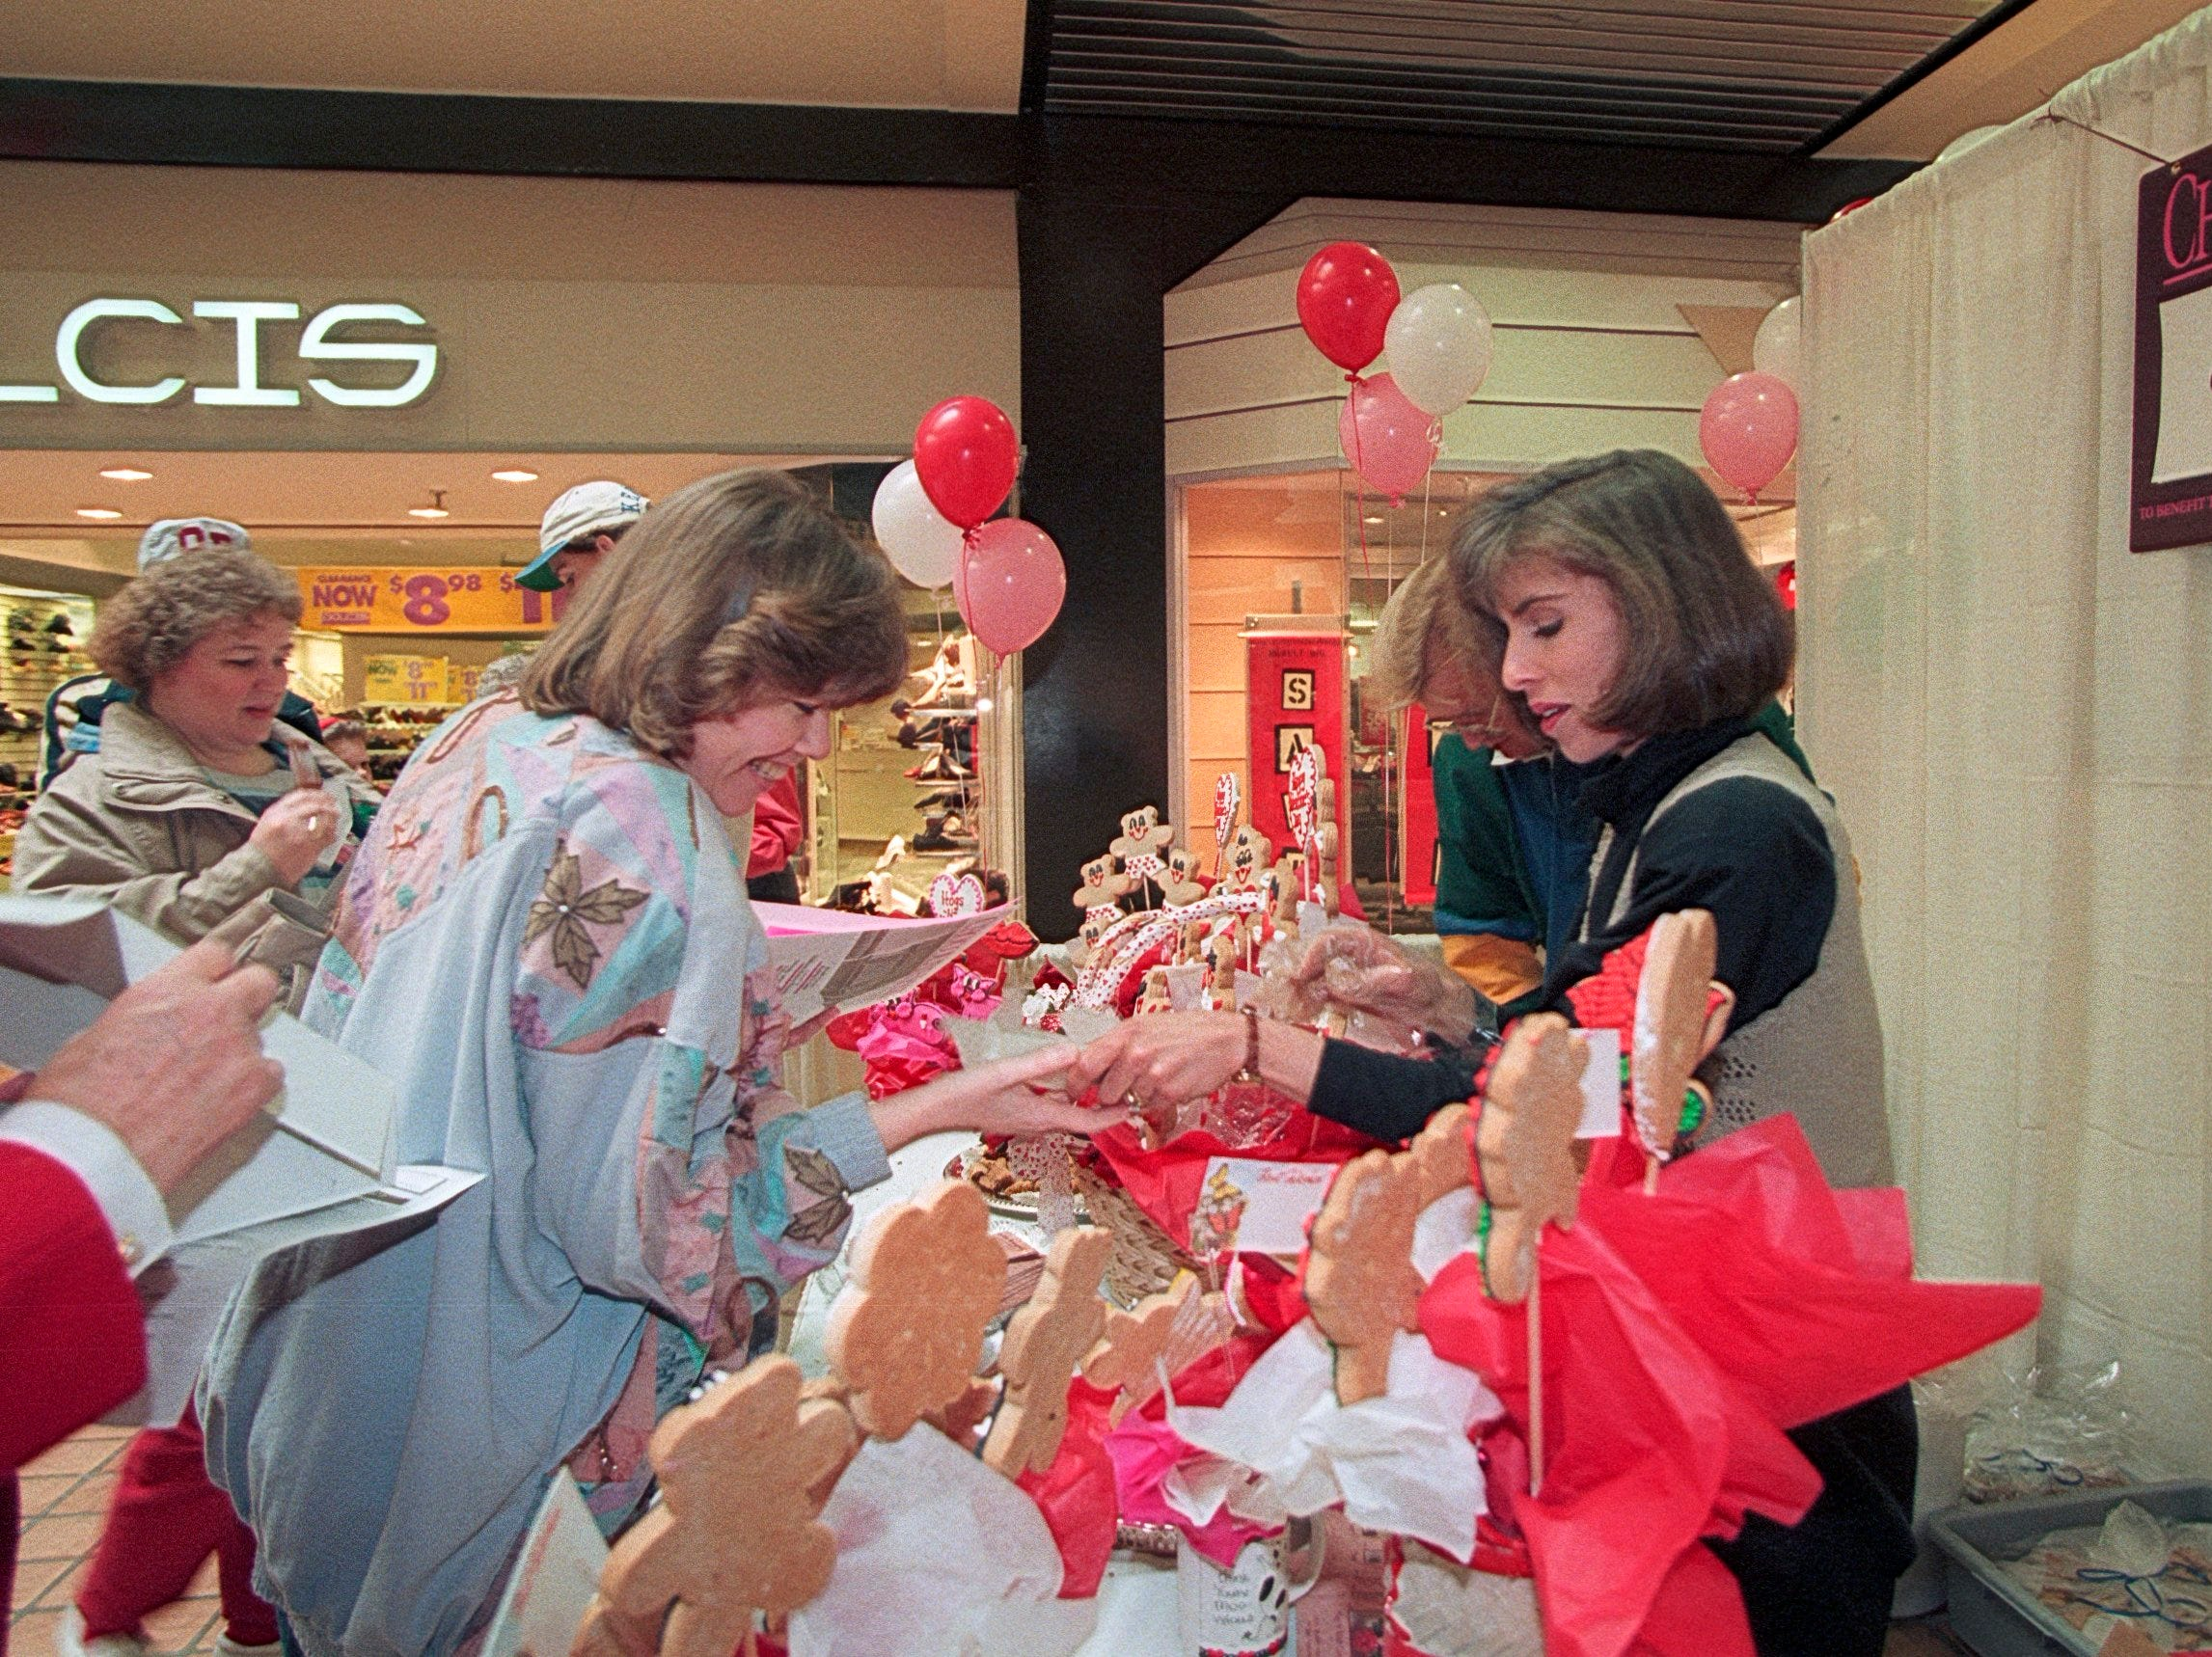 Carolyn Neimeyer, right, of the Cookie Bouquet distributes a treat to Brenda DeHart during the Chocolate Fest on Jan. 21, 1995, at East Towne Mall. (J. Miles Cary/News Sentinel)